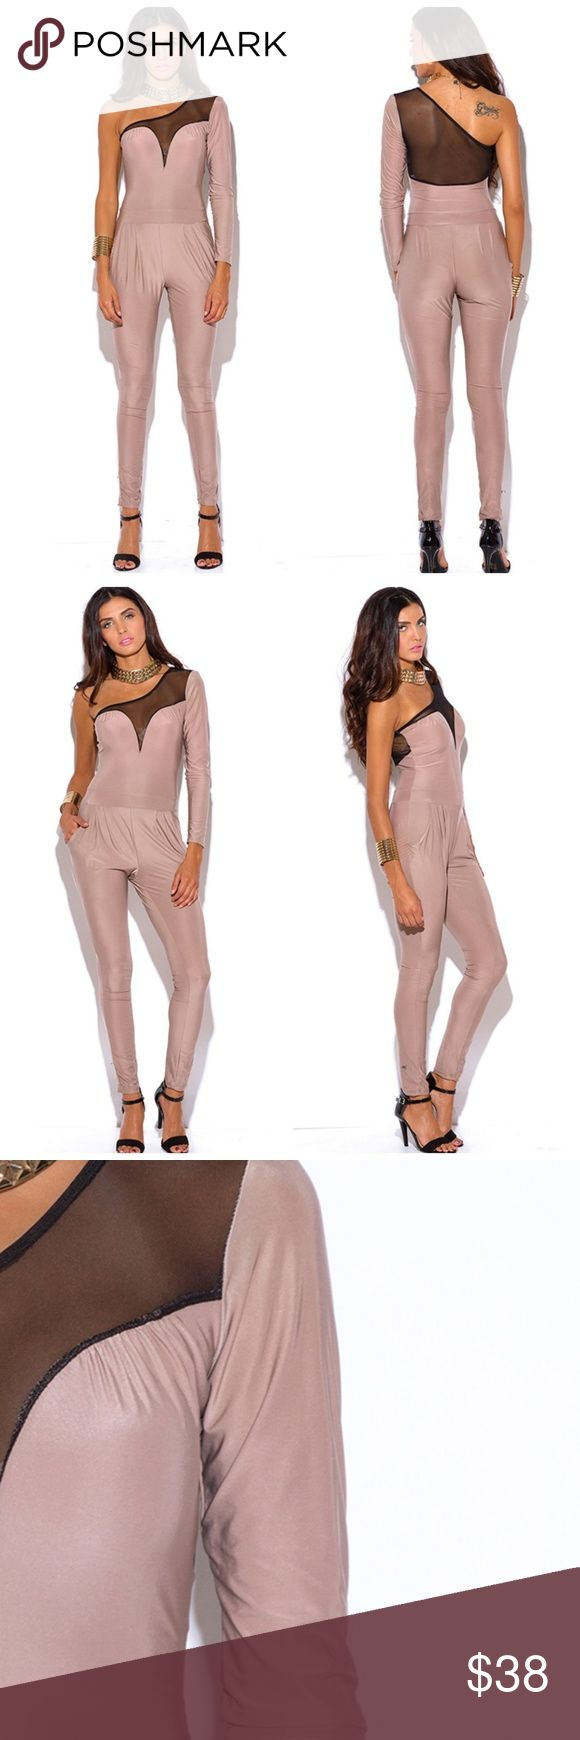 NUDE BEIGE MESH HAREM CLUBBING CATSUIT JUMPSUIT NUDE BEIGE MESH INSET ONE SHOULDER EVENING PARTY FITTED HAREM CLUBBING CATSUIT JUMPSUIT  This one sleeve jumpsuit is made for the stylish divas super comfortable stretchy material that falls in between matte and silky semi sheer  mesh back. Stretchy for an easy fit/unlined 96% polyester 4% spandex Pants Jumpsuits & Rompers